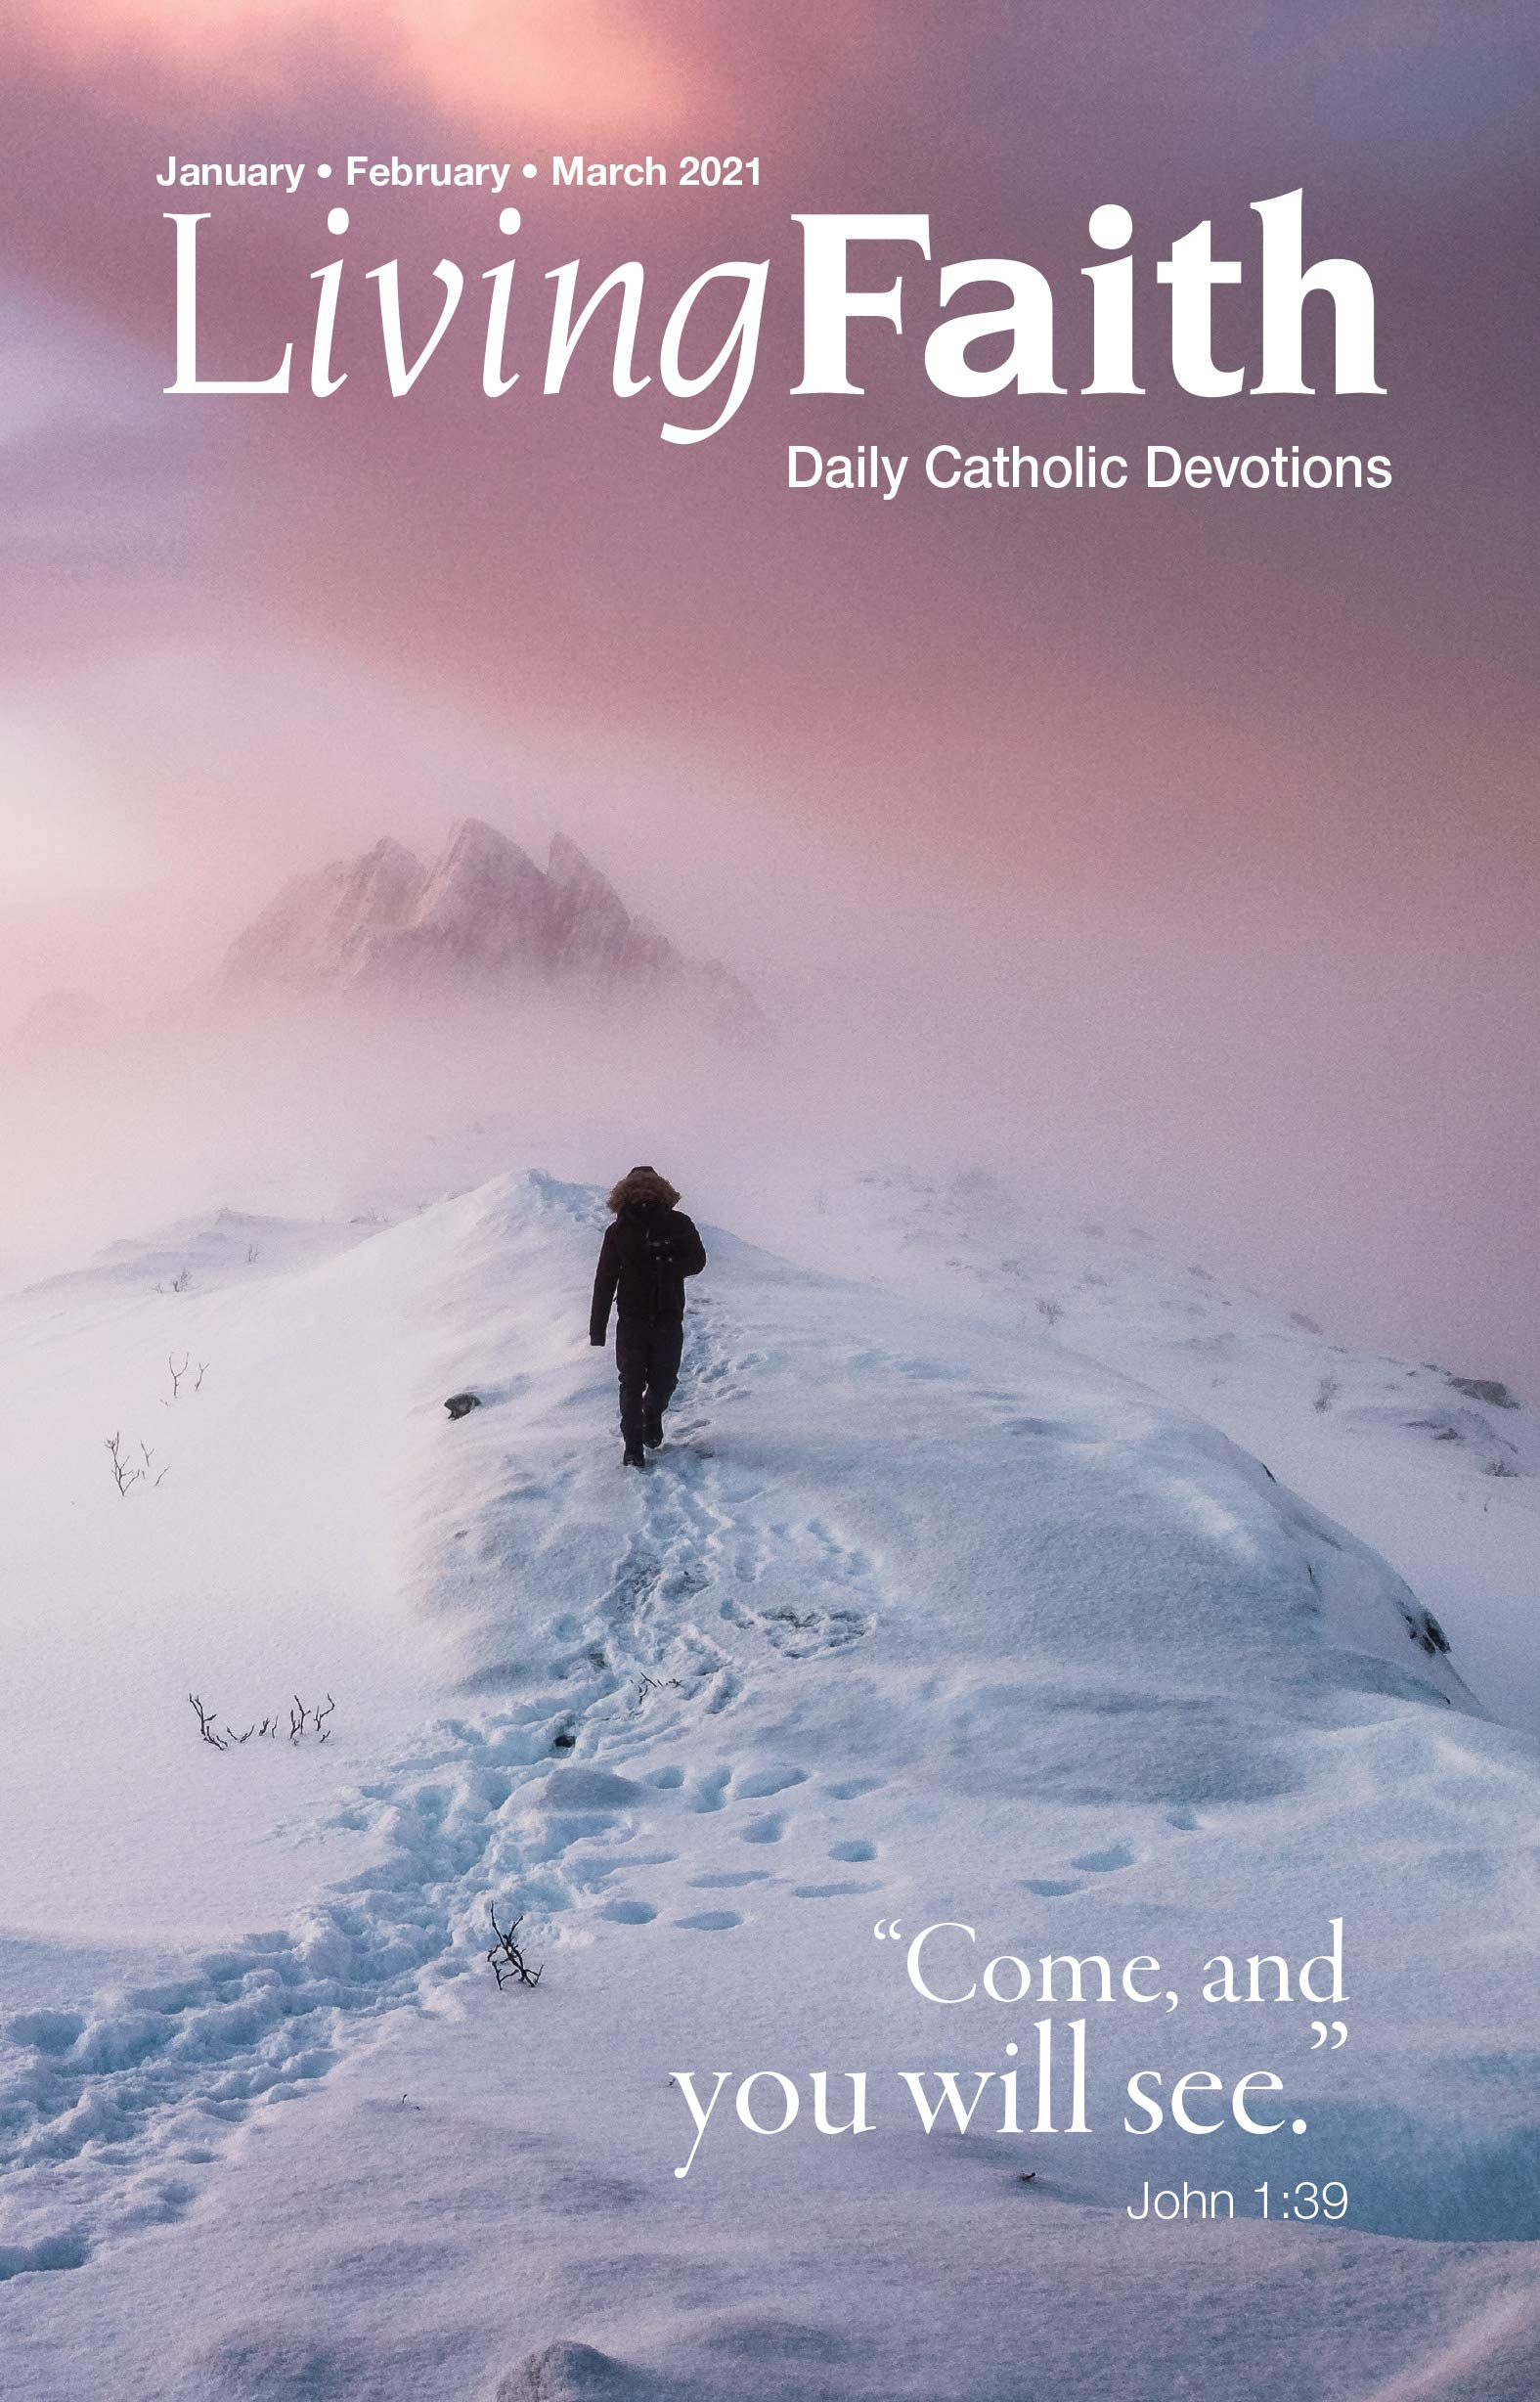 Living Faith - Daily Catholic Devotions, Volume 36 Number 4 - 2021 January, February, March